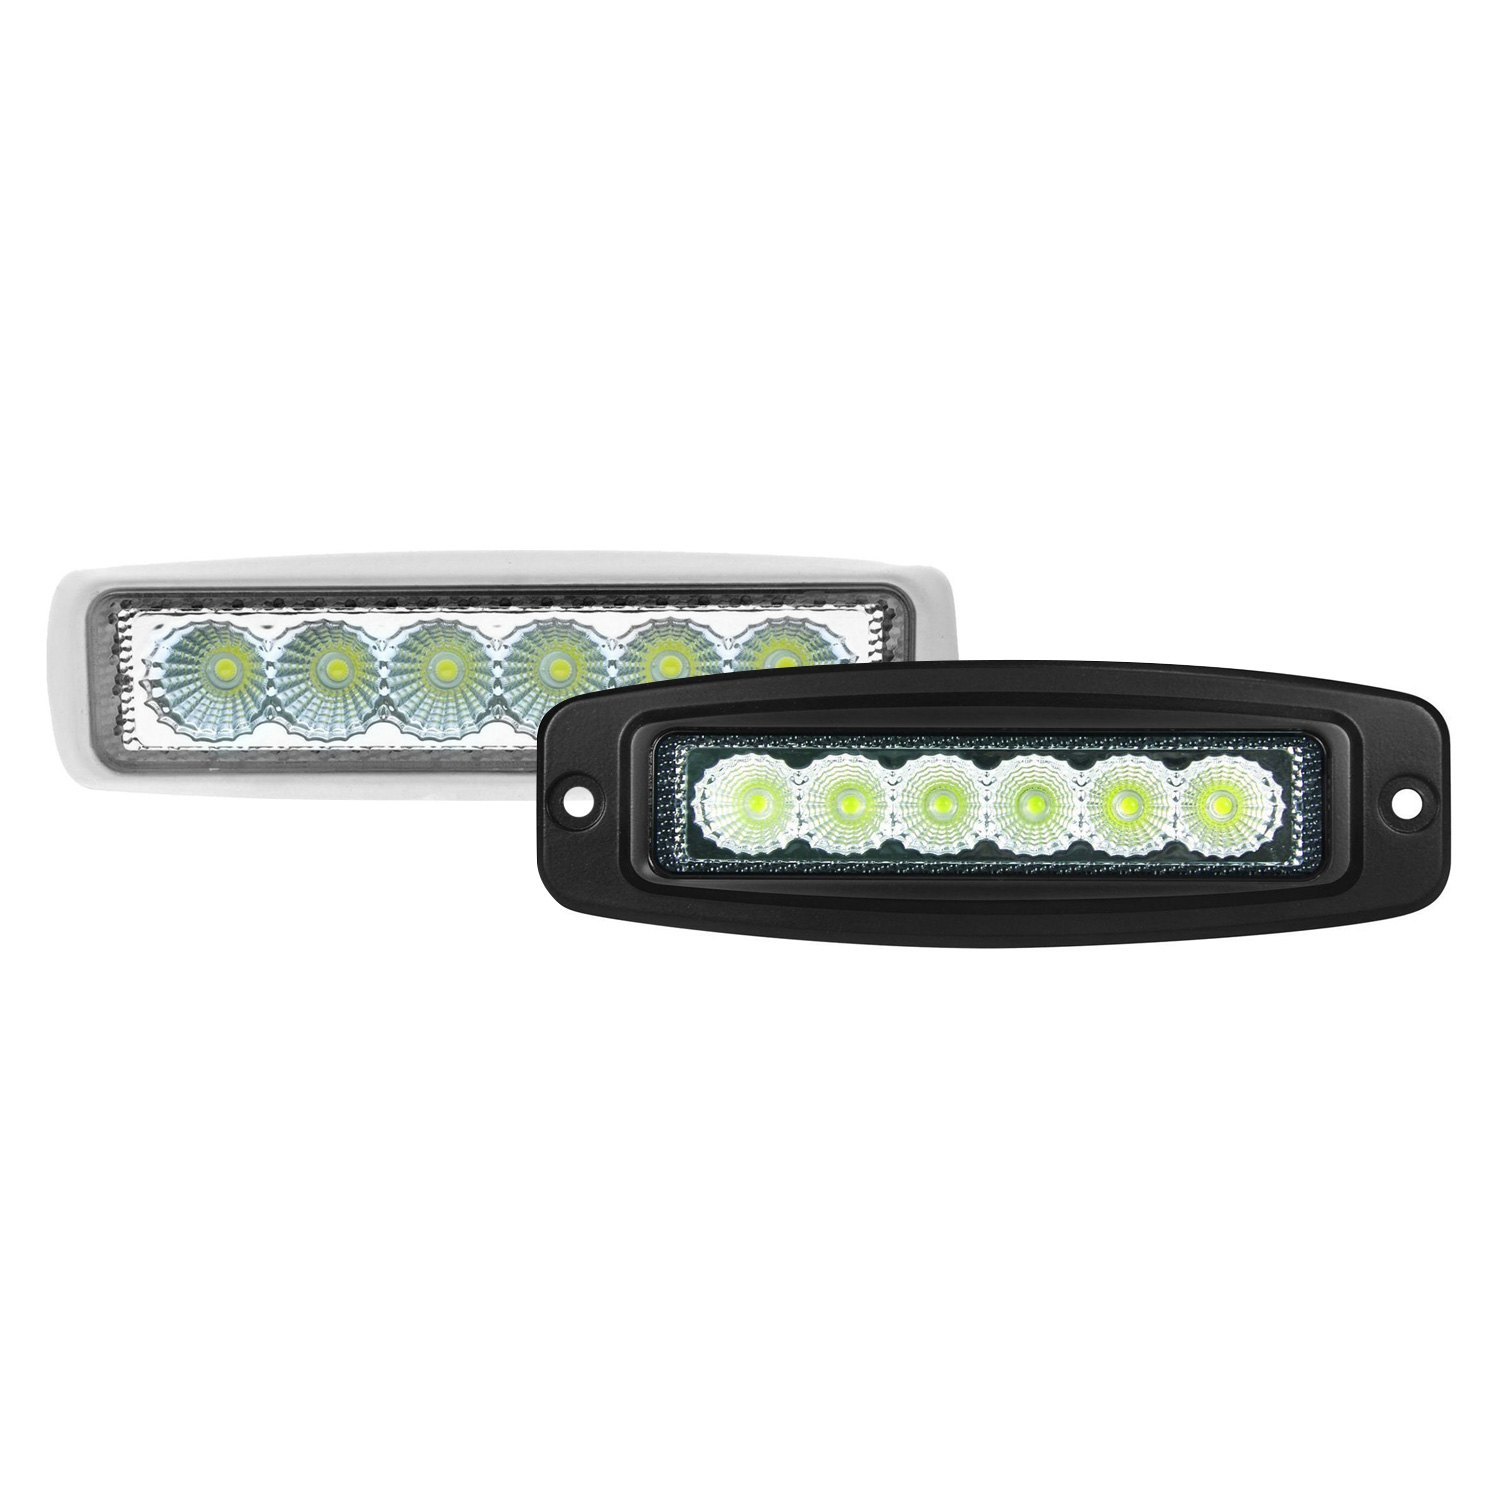 Hella valuefit mini 6 18w slim led light bar hella valuefit mini slim led light bars aloadofball Image collections